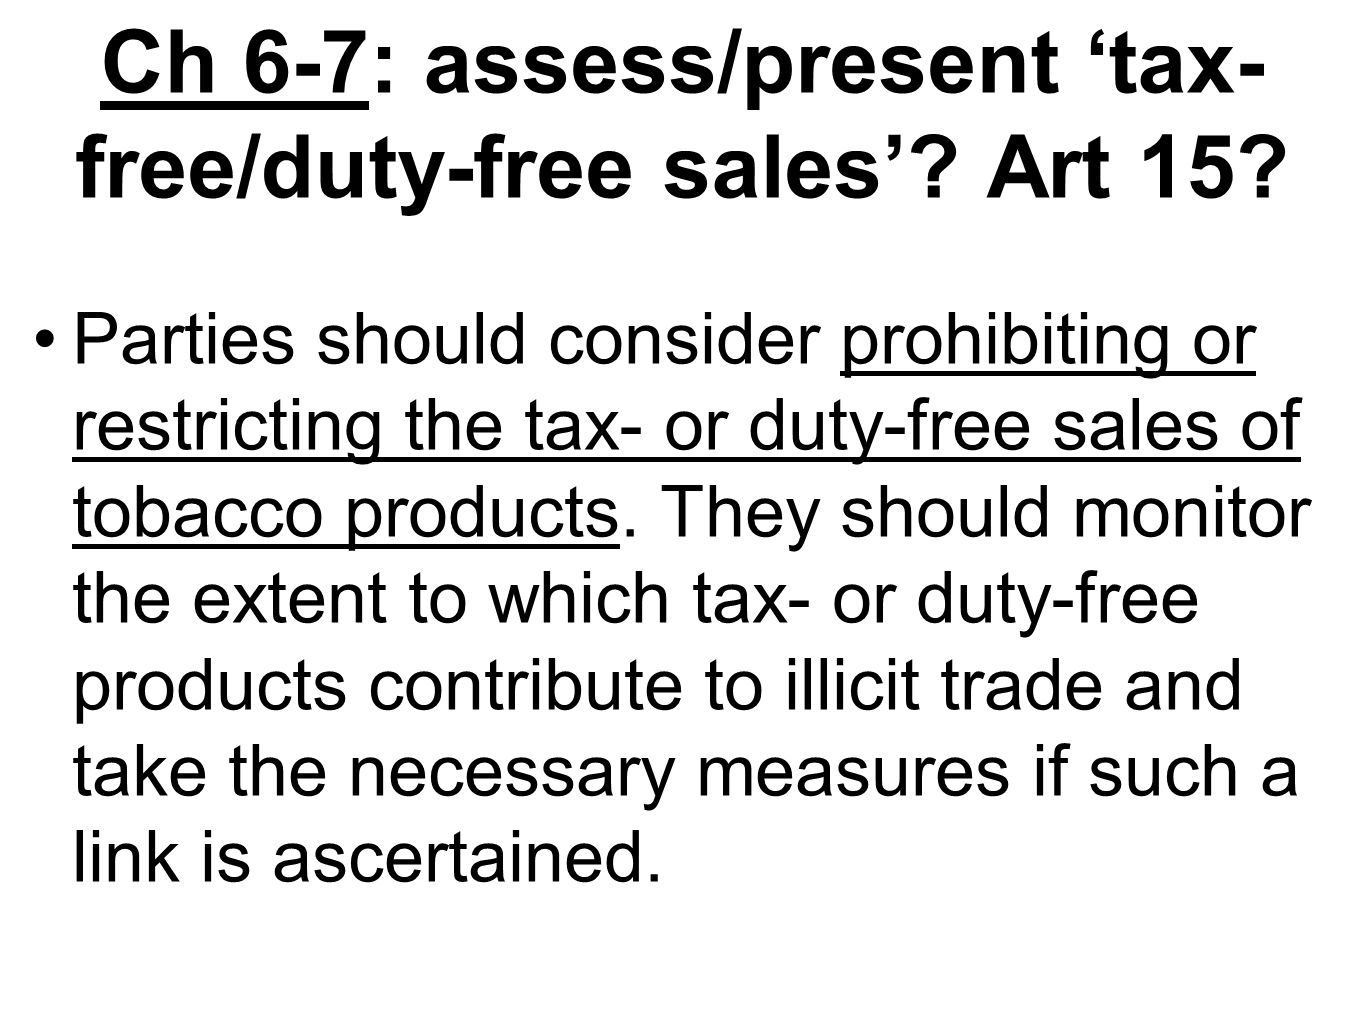 Ch 6-7: assess/present 'tax- free/duty-free sales' Art 15